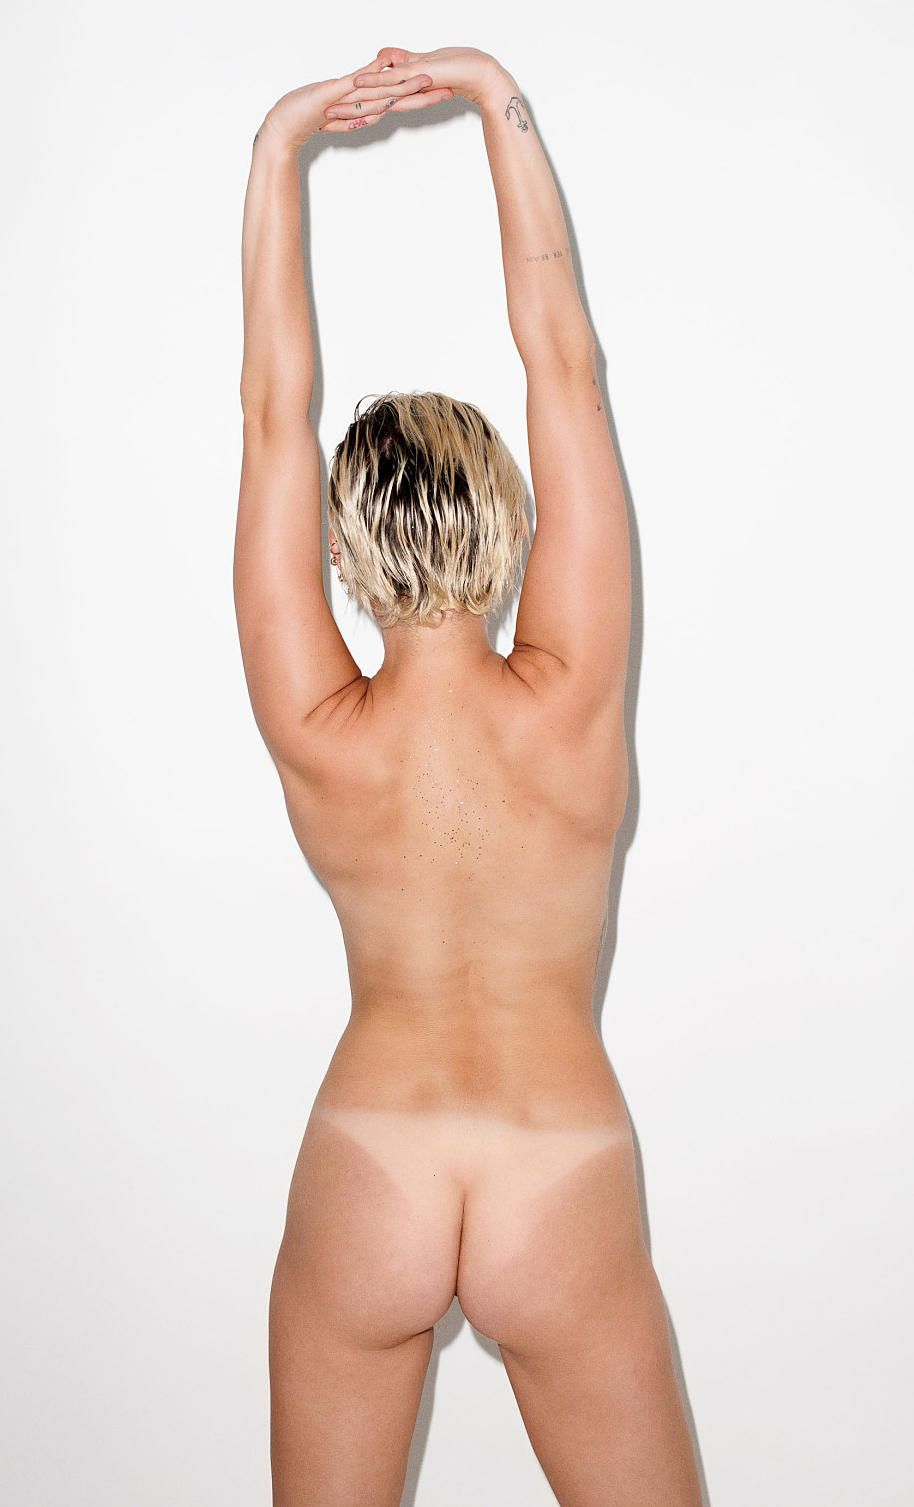 Miley Cyrus Nude Pics Uncensored